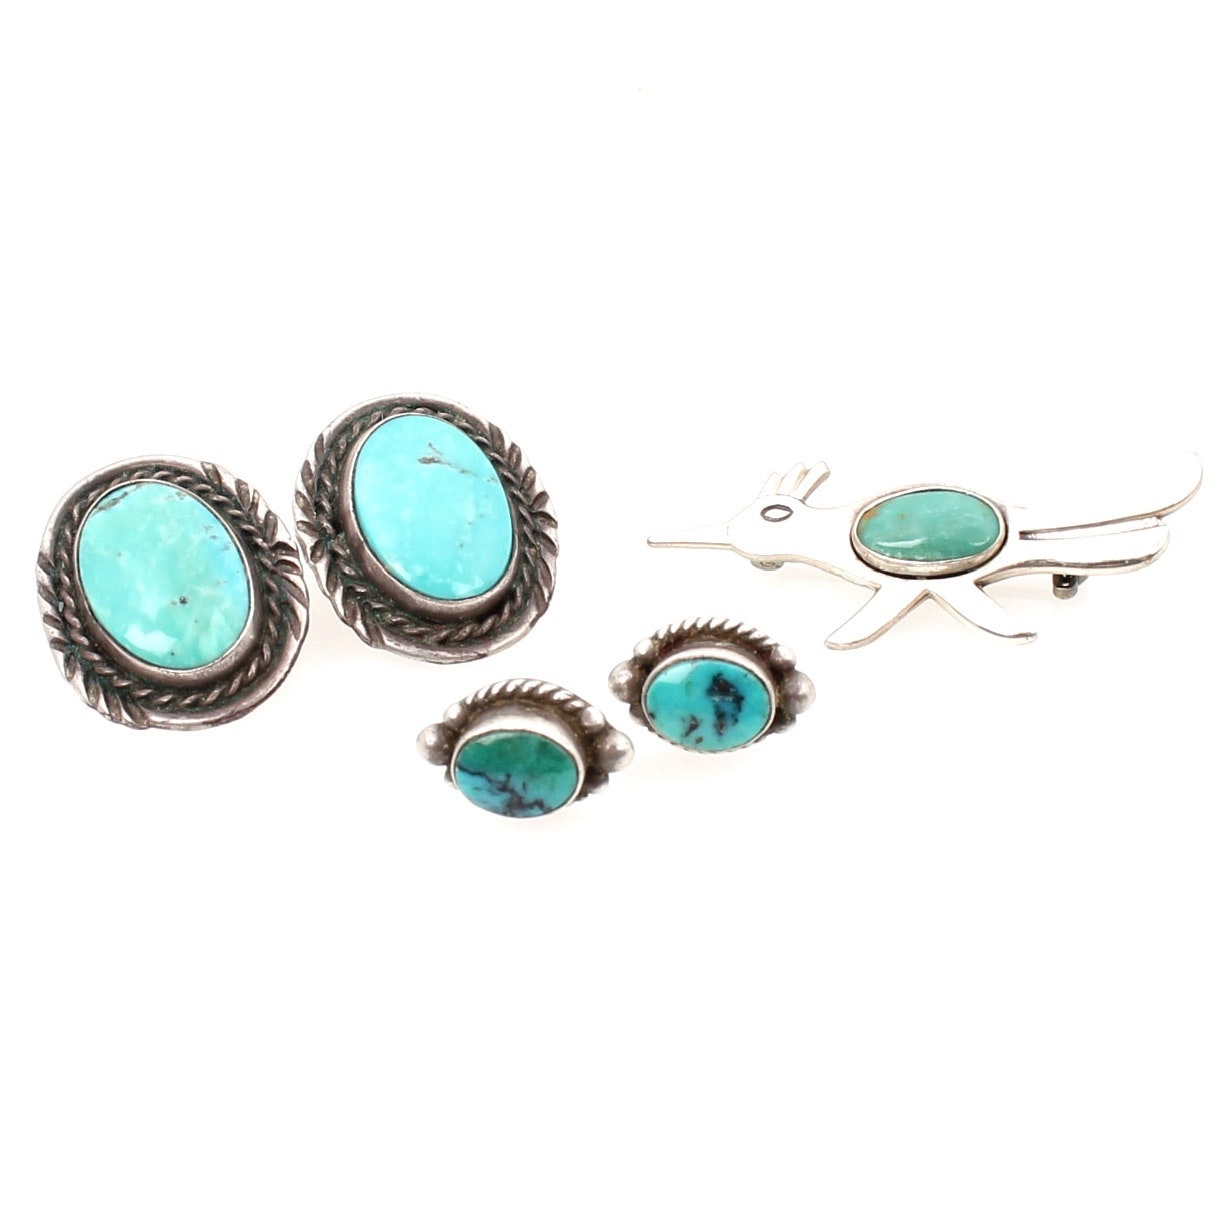 Sterling Silver Turquoise Earrings and Brooch